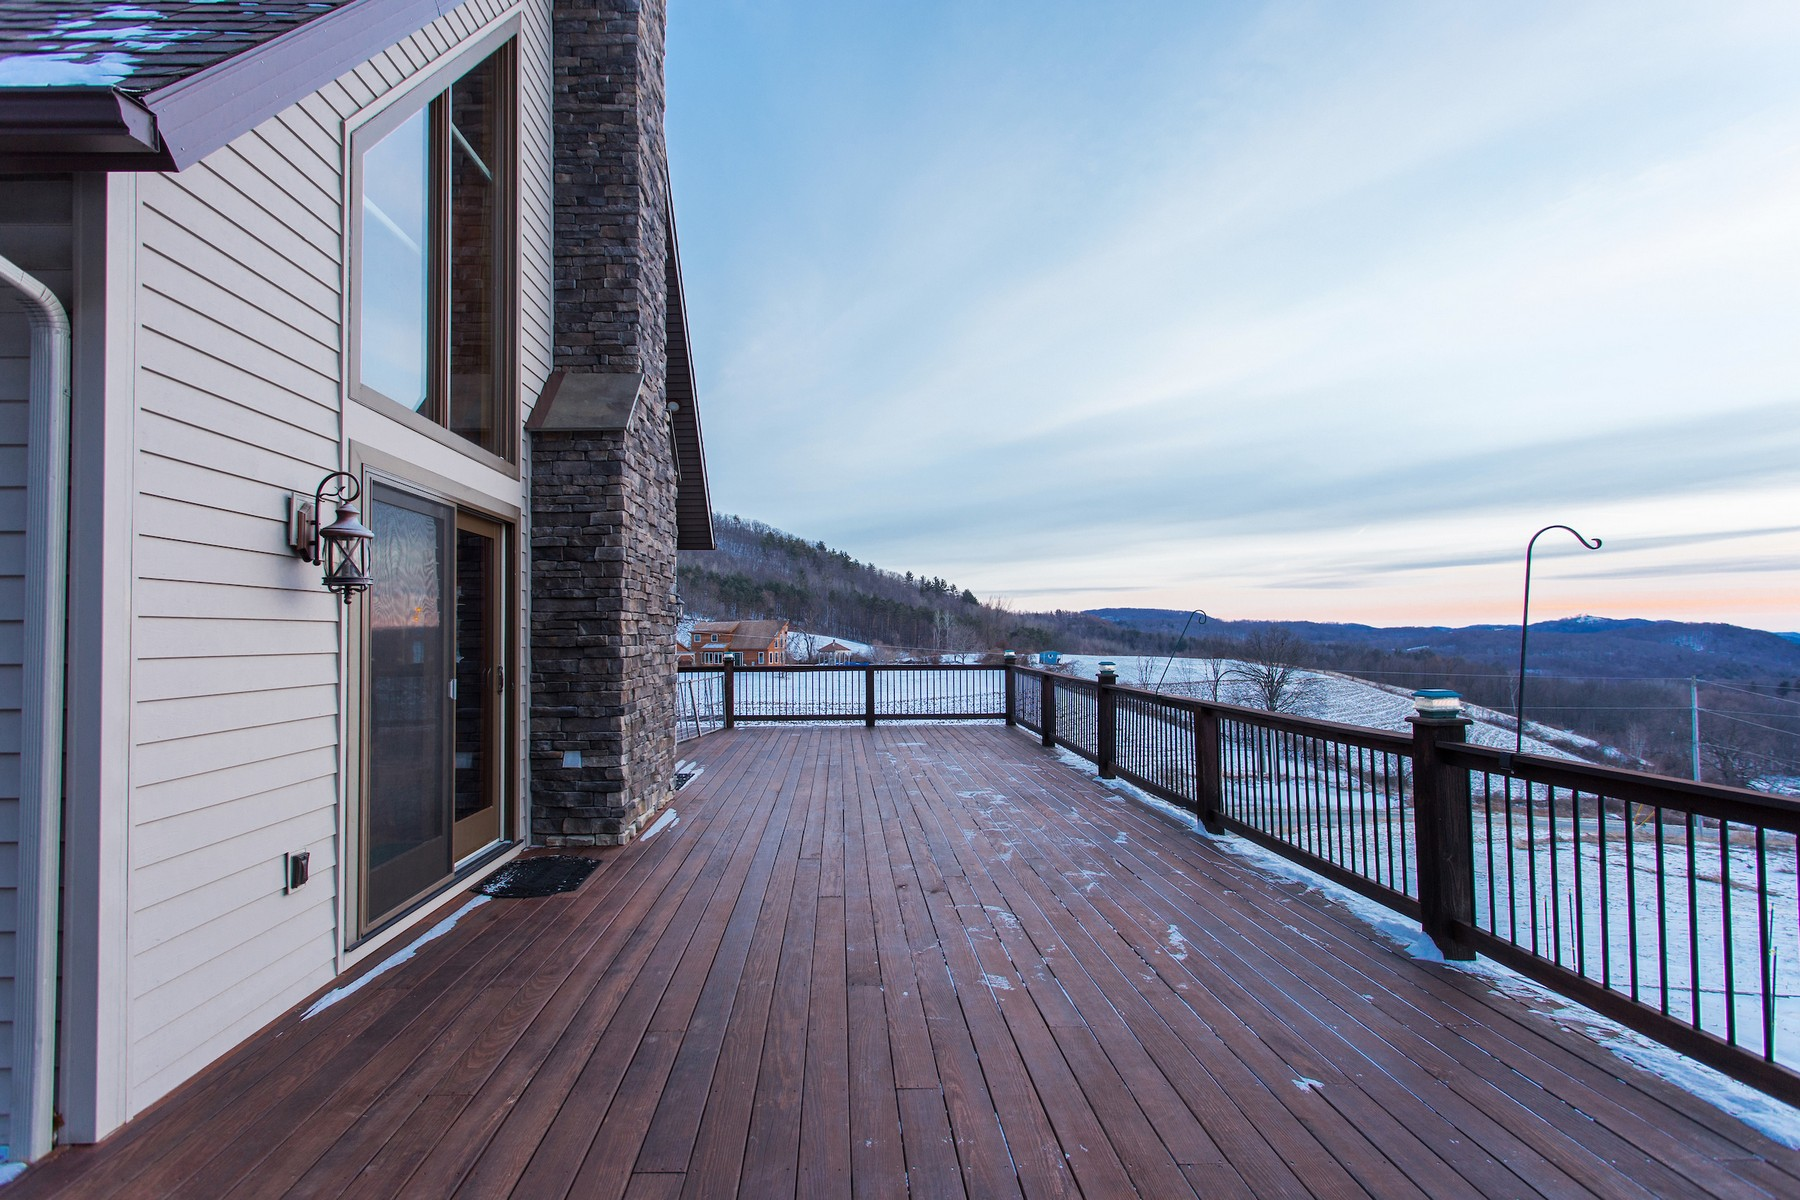 Additional photo for property listing at Breathtaking Home With View of Surrounding Hilltop 163  Pope Hill Rd Argyle, New York 12809 États-Unis